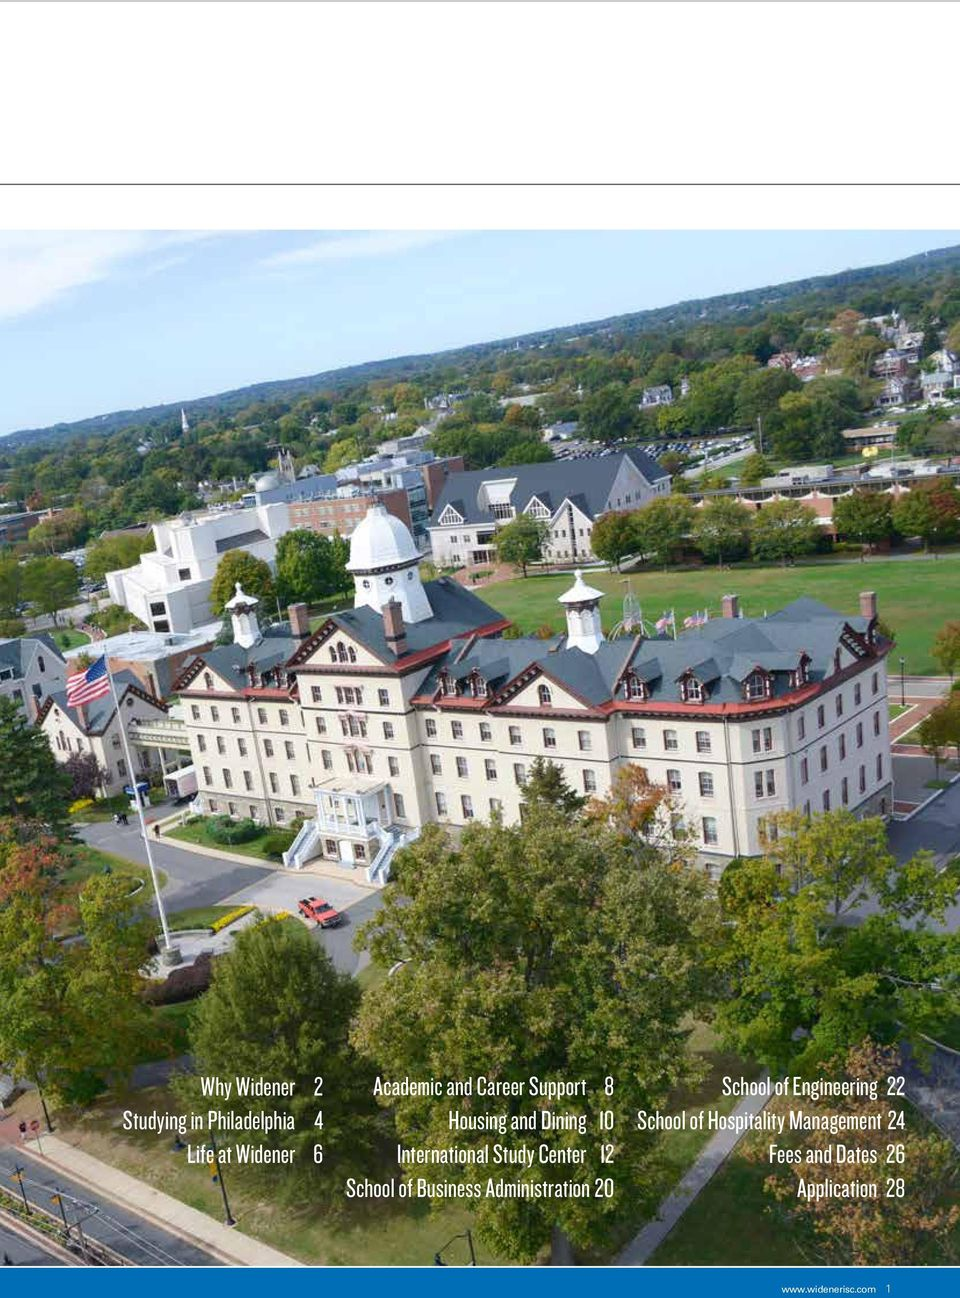 Engineering School of Hospitality Management International Study Center International Year One Program Pre-Master s Program 2014-2015 Dates and Fees How to Apply Why Widener